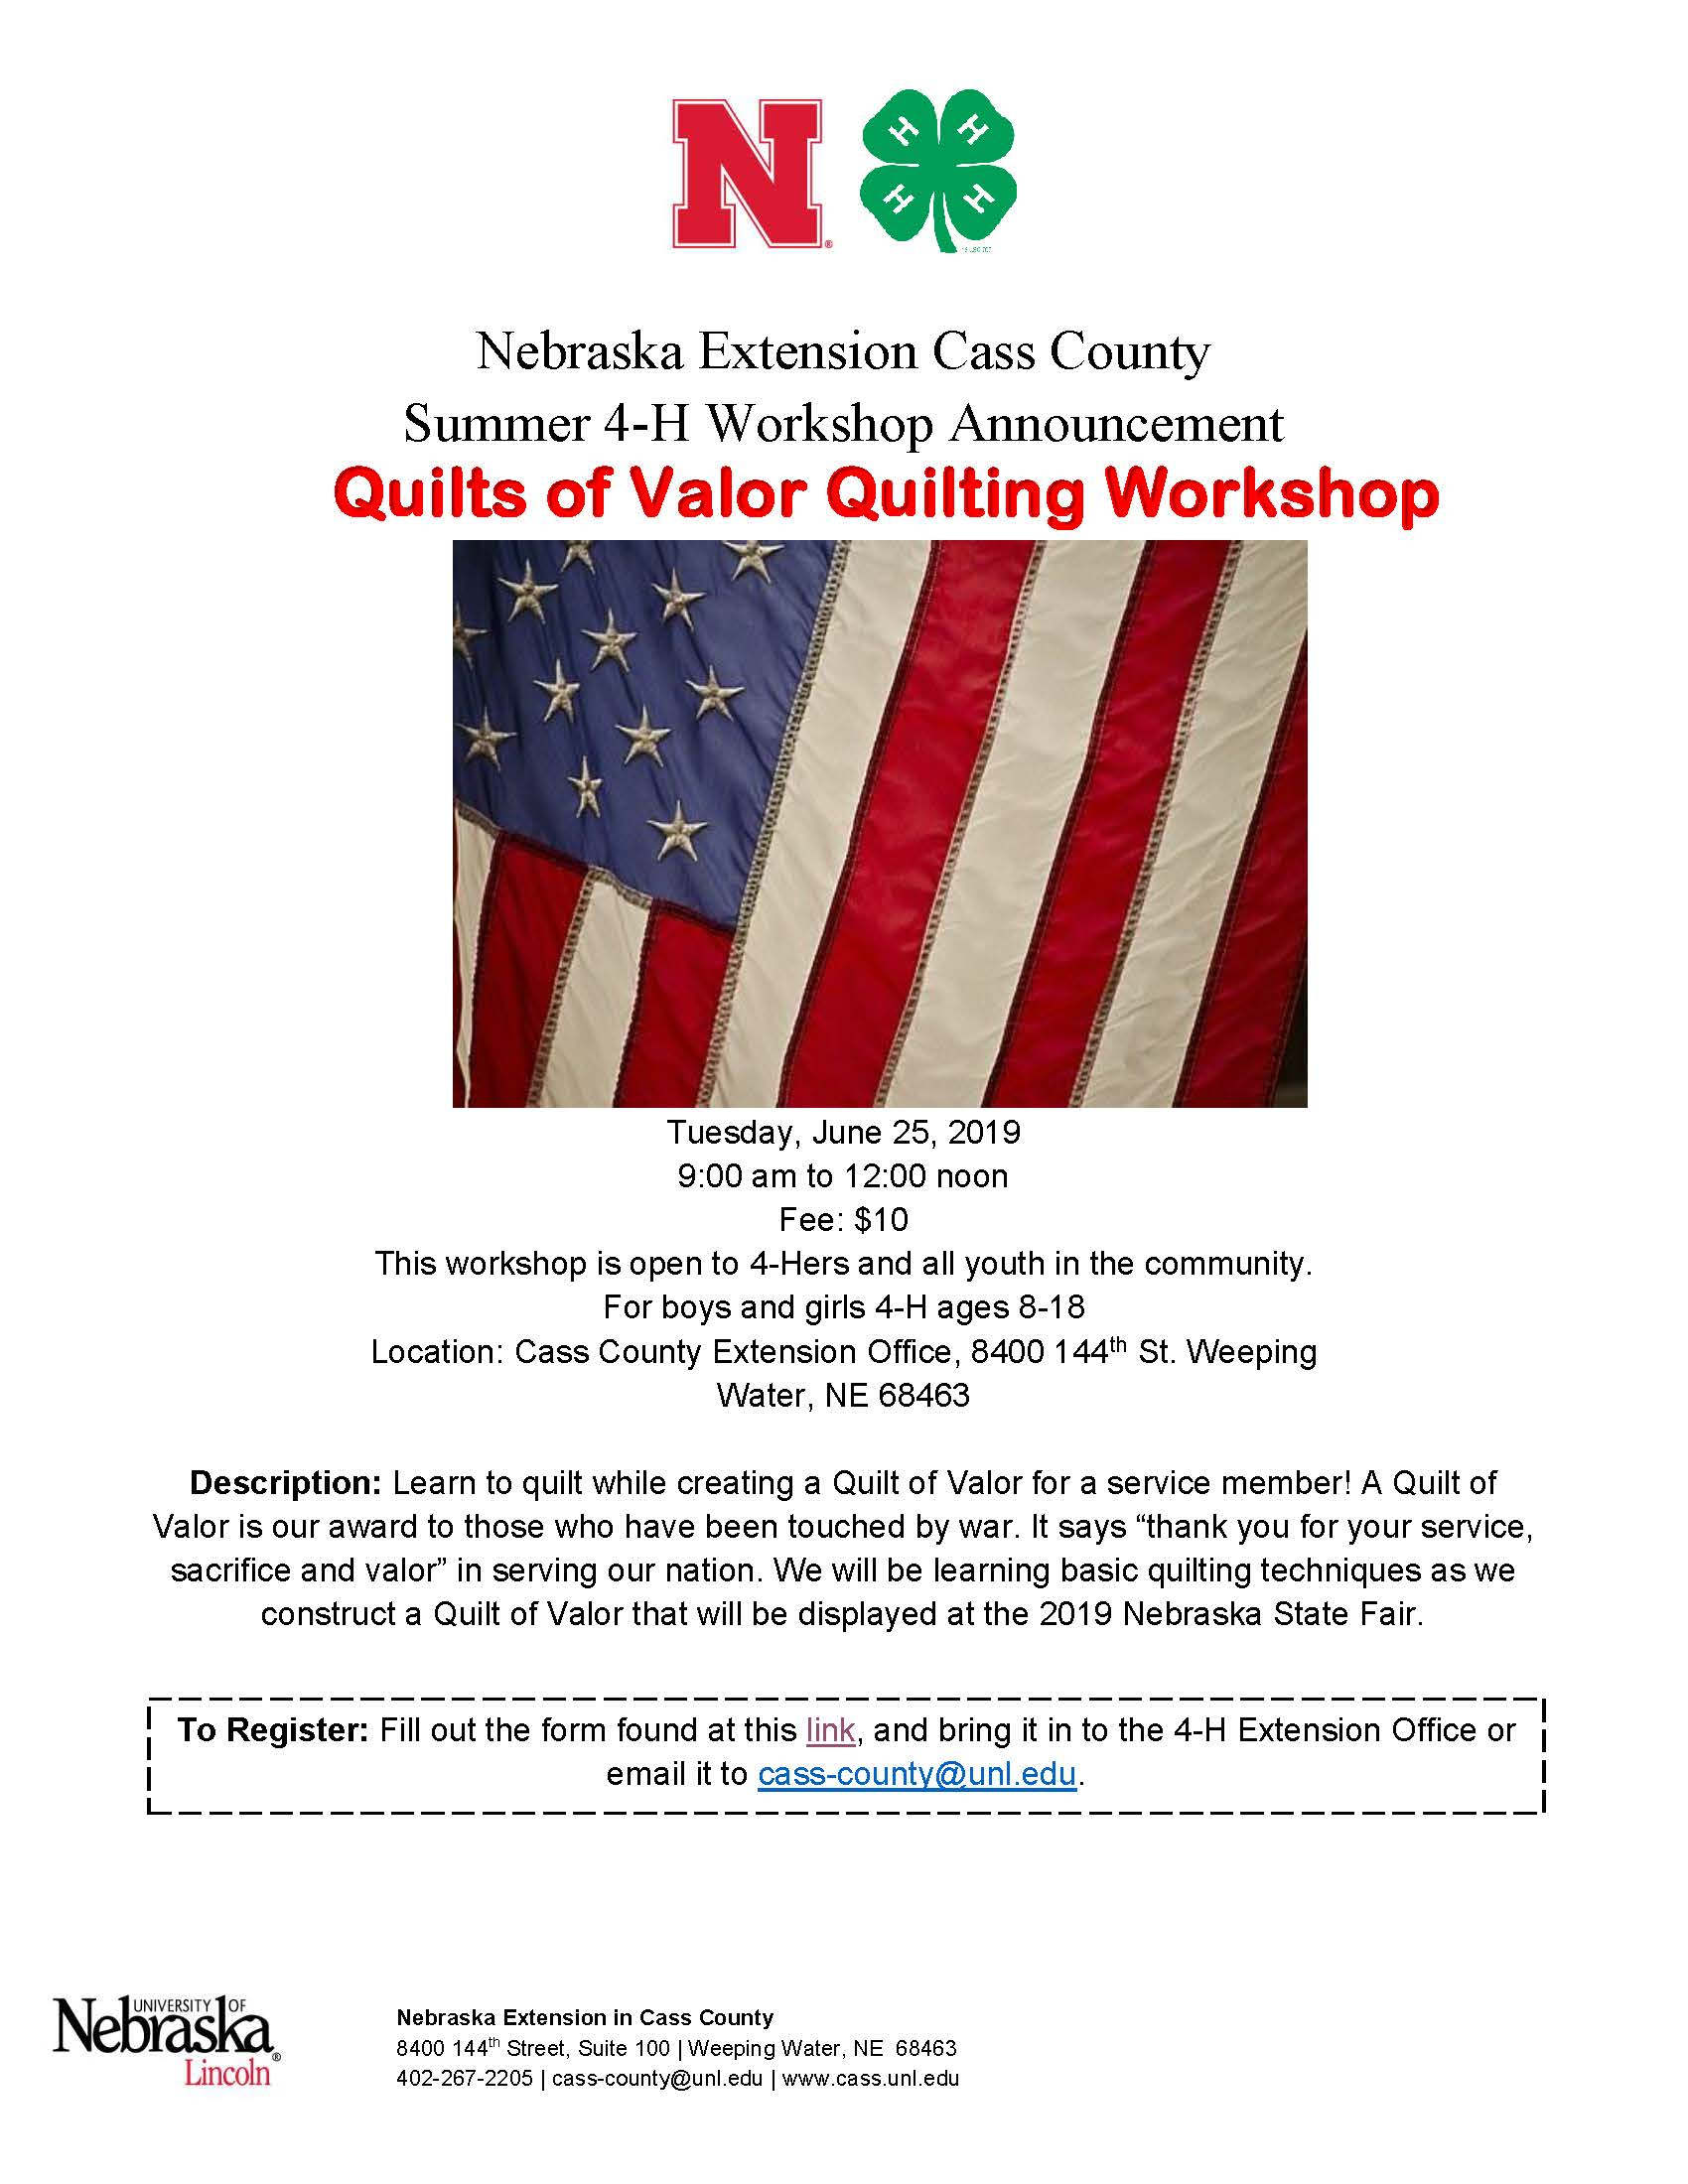 2019 Quilt of Valor Quilting Workshop